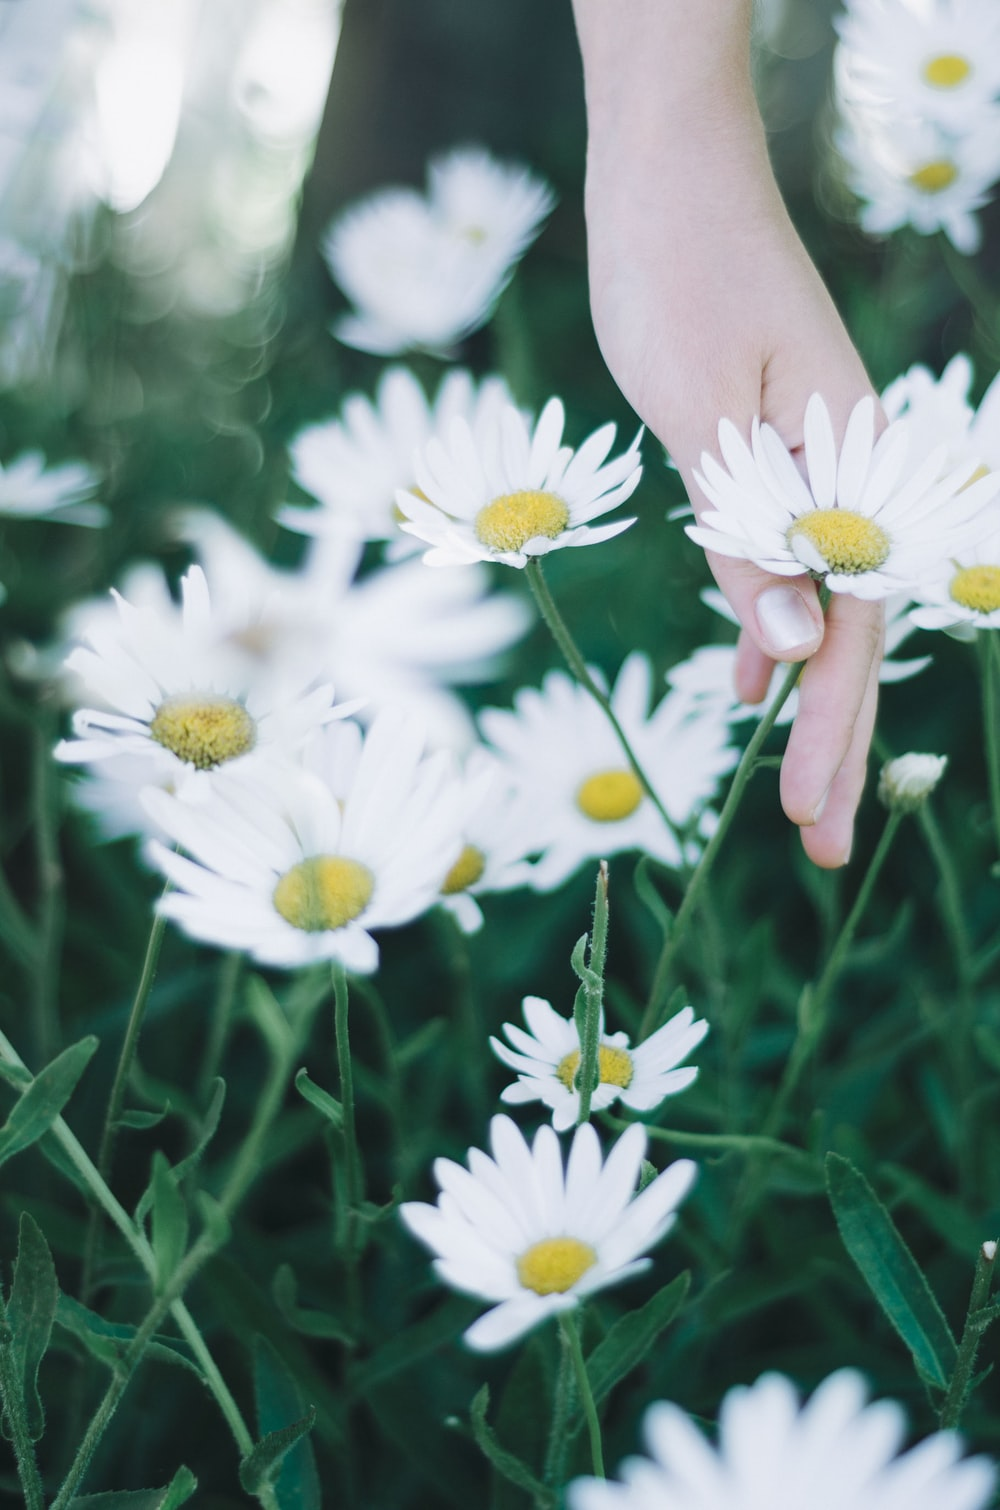 500 daisy pictures download free images on unsplash person holding daisy flowers izmirmasajfo